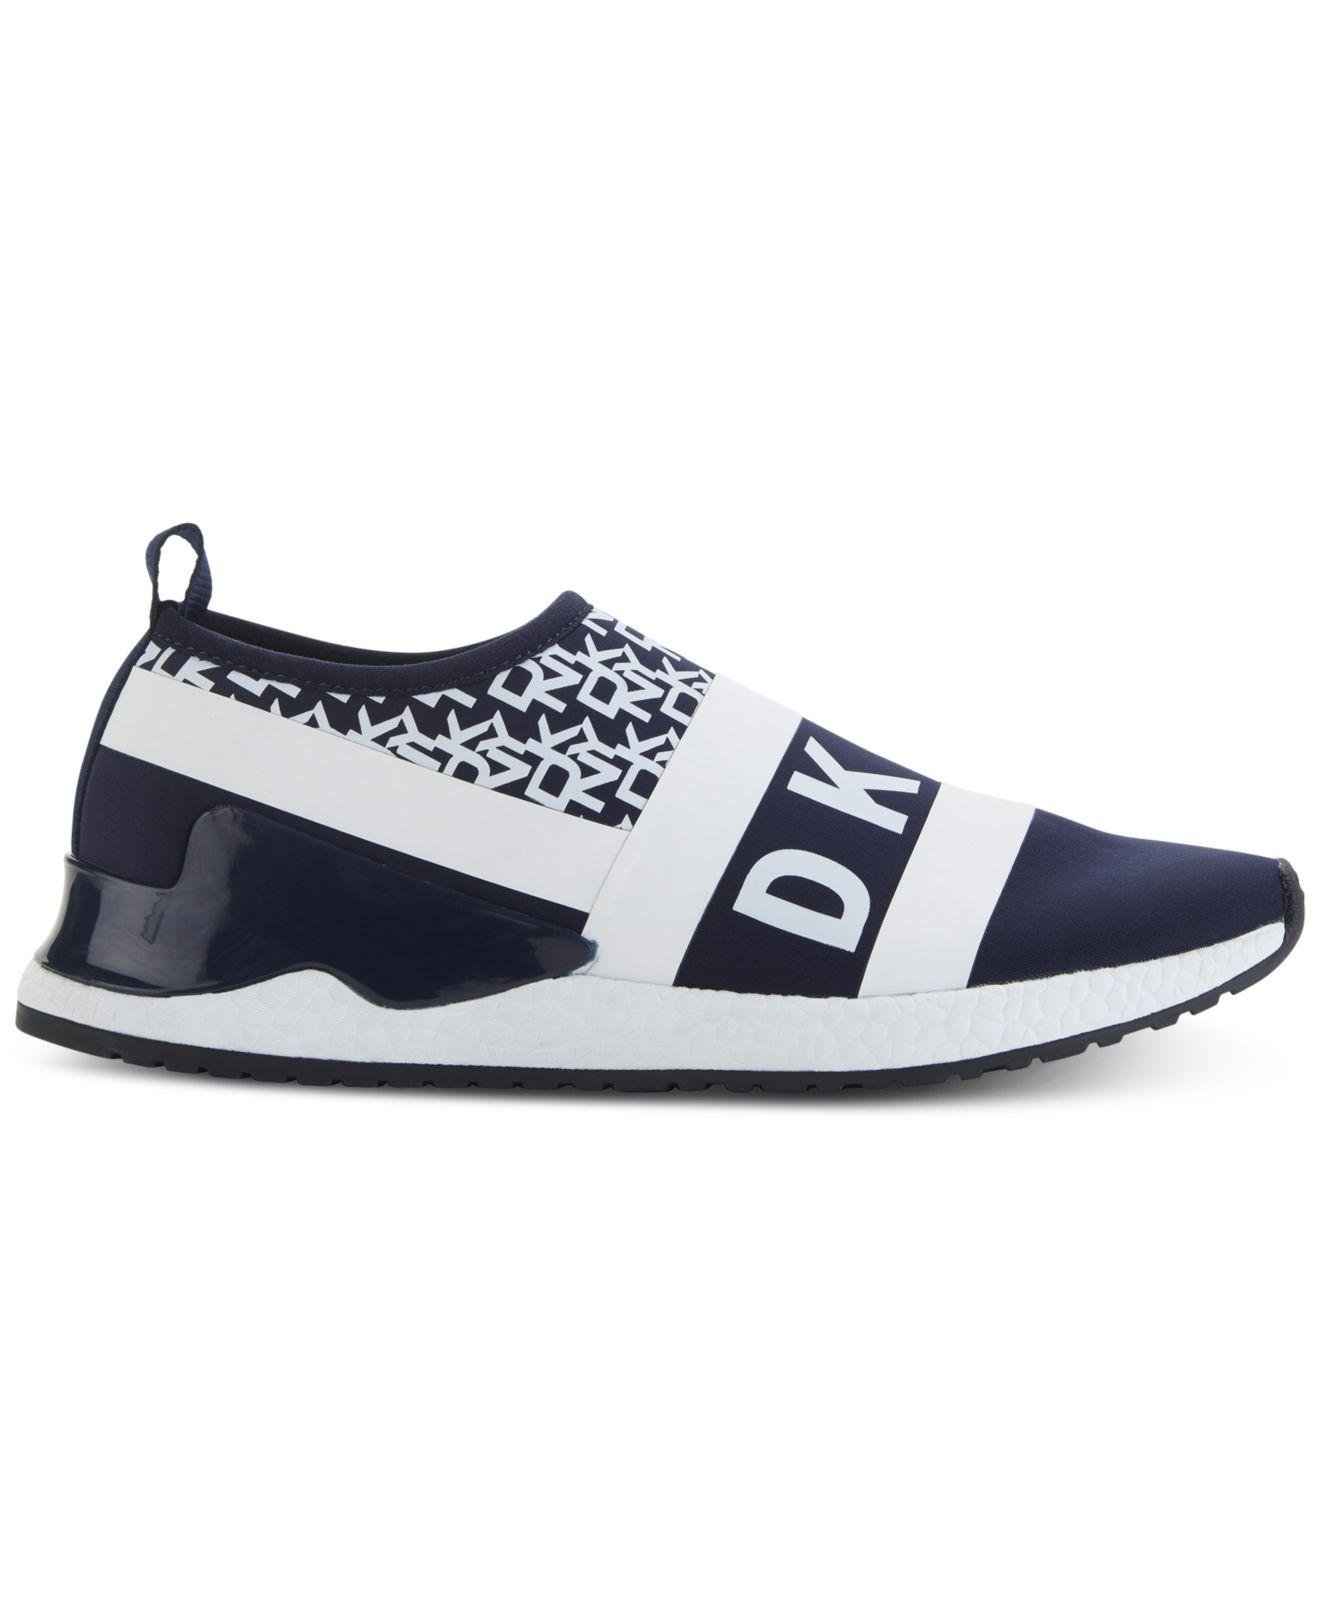 DKNY Reese Sneakers, Created For Macy's